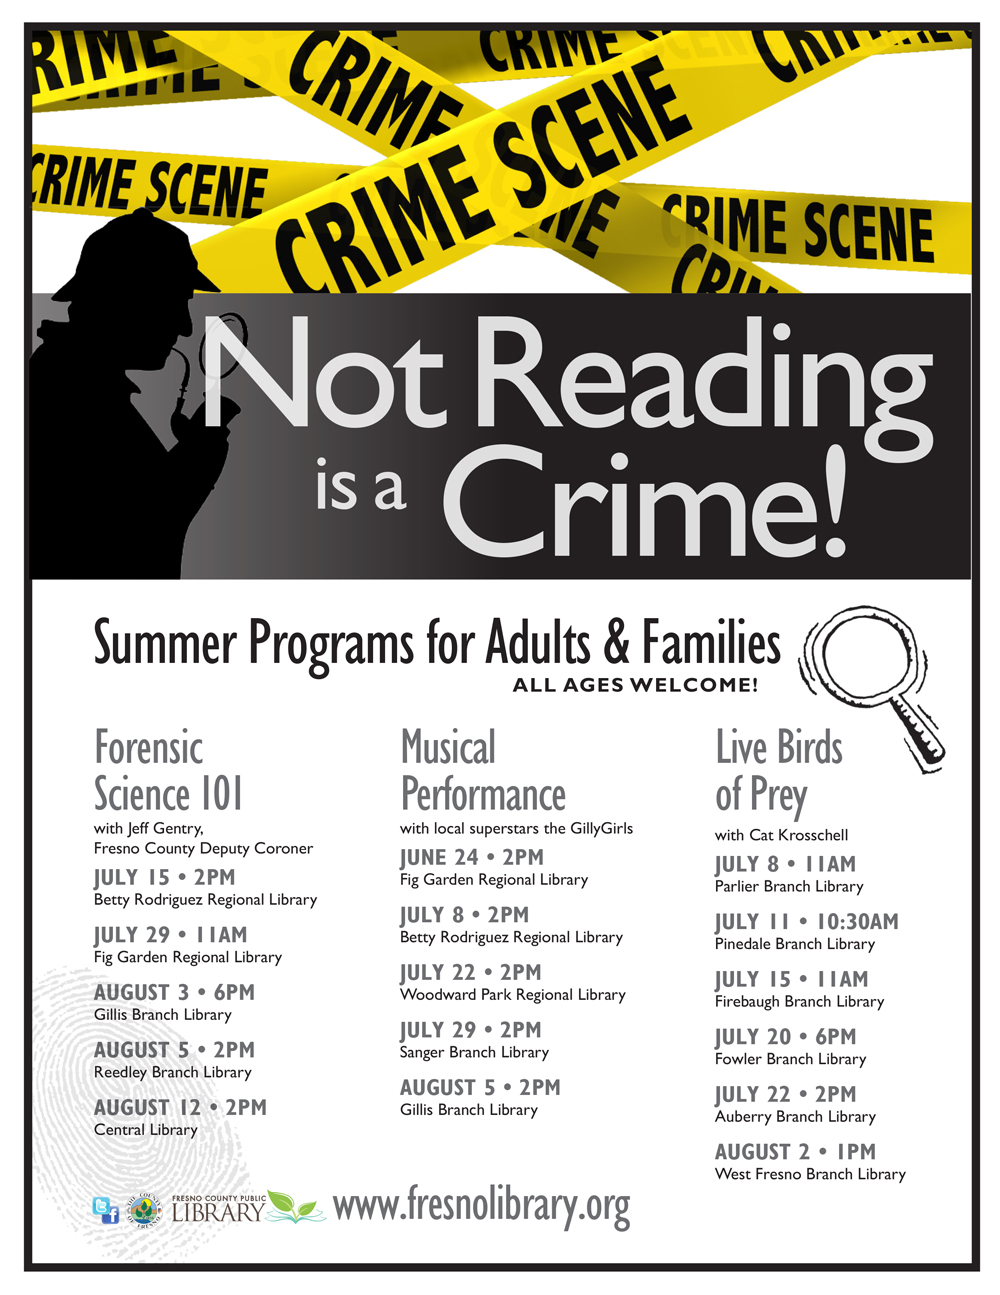 Not-Reading-is-a-Crime-2017